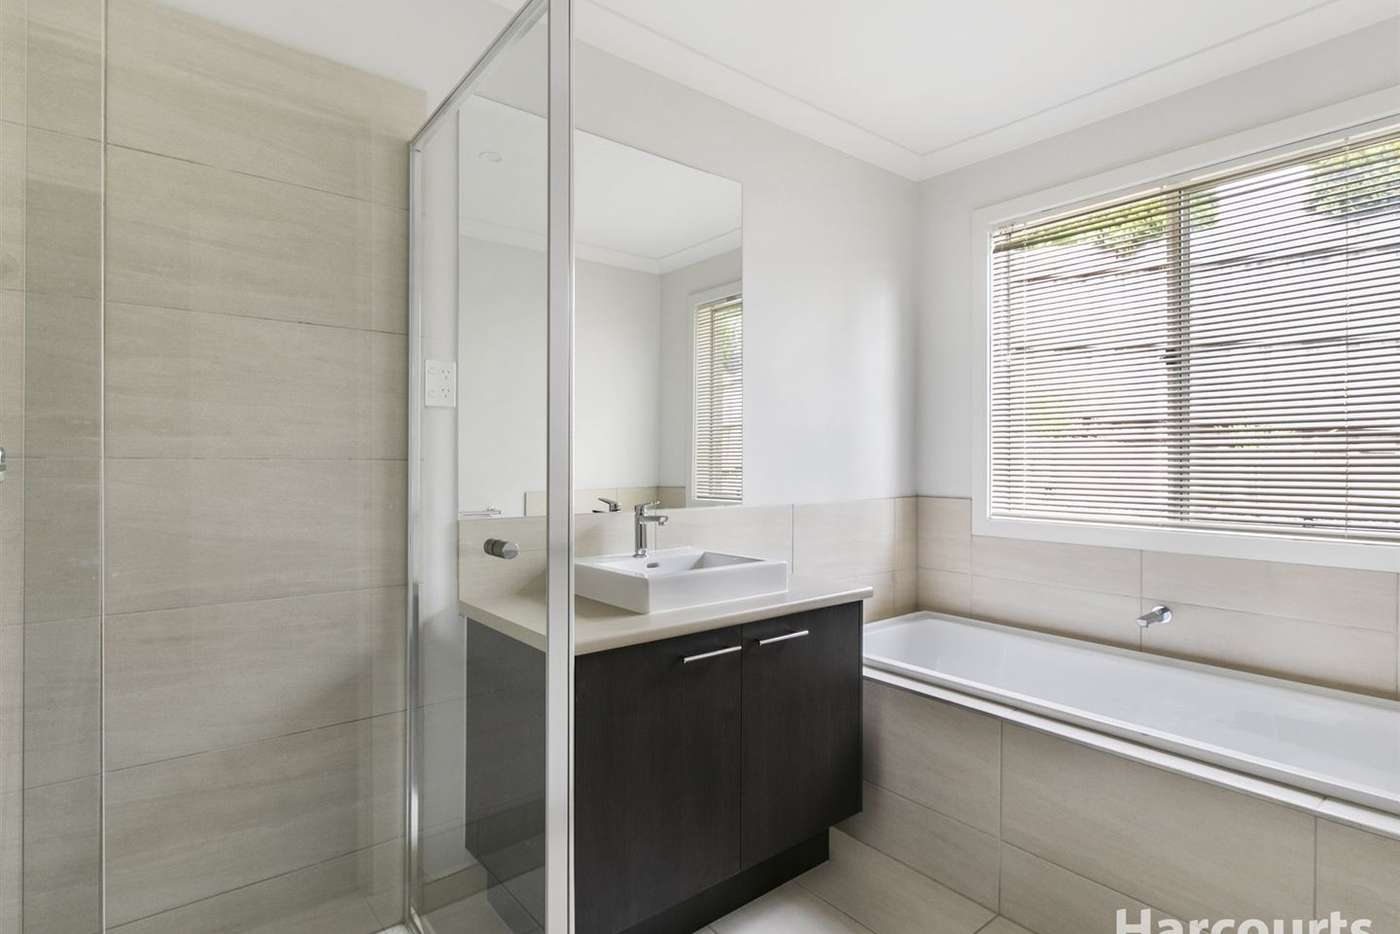 Sixth view of Homely house listing, 11 Emma Close, Drouin VIC 3818